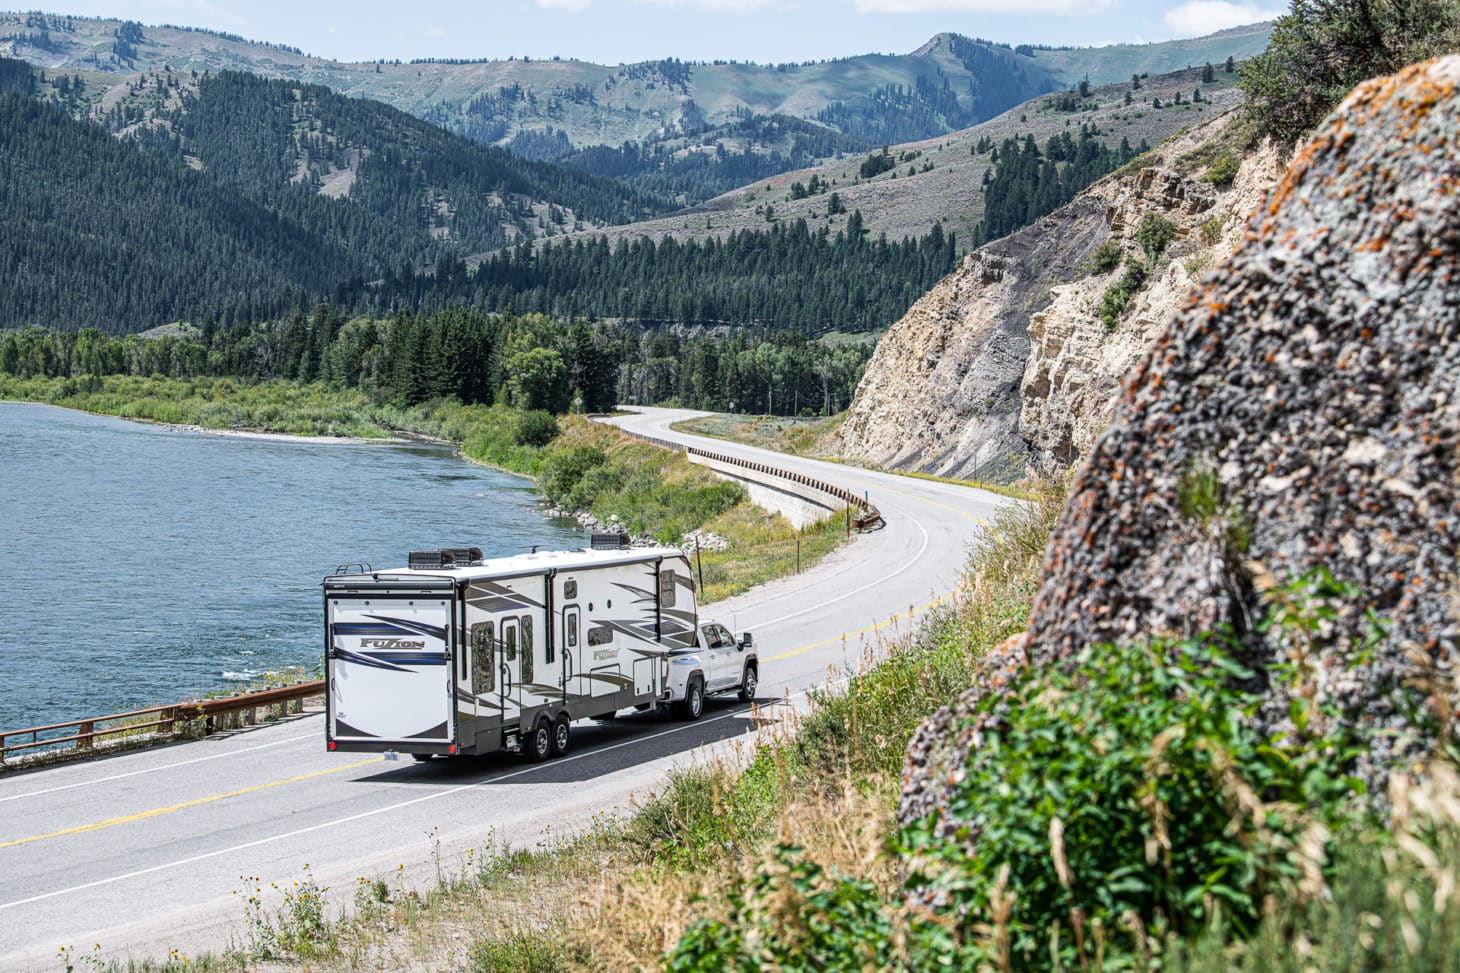 Toy hauler travel trailer being towed by a pickup truck through winding road